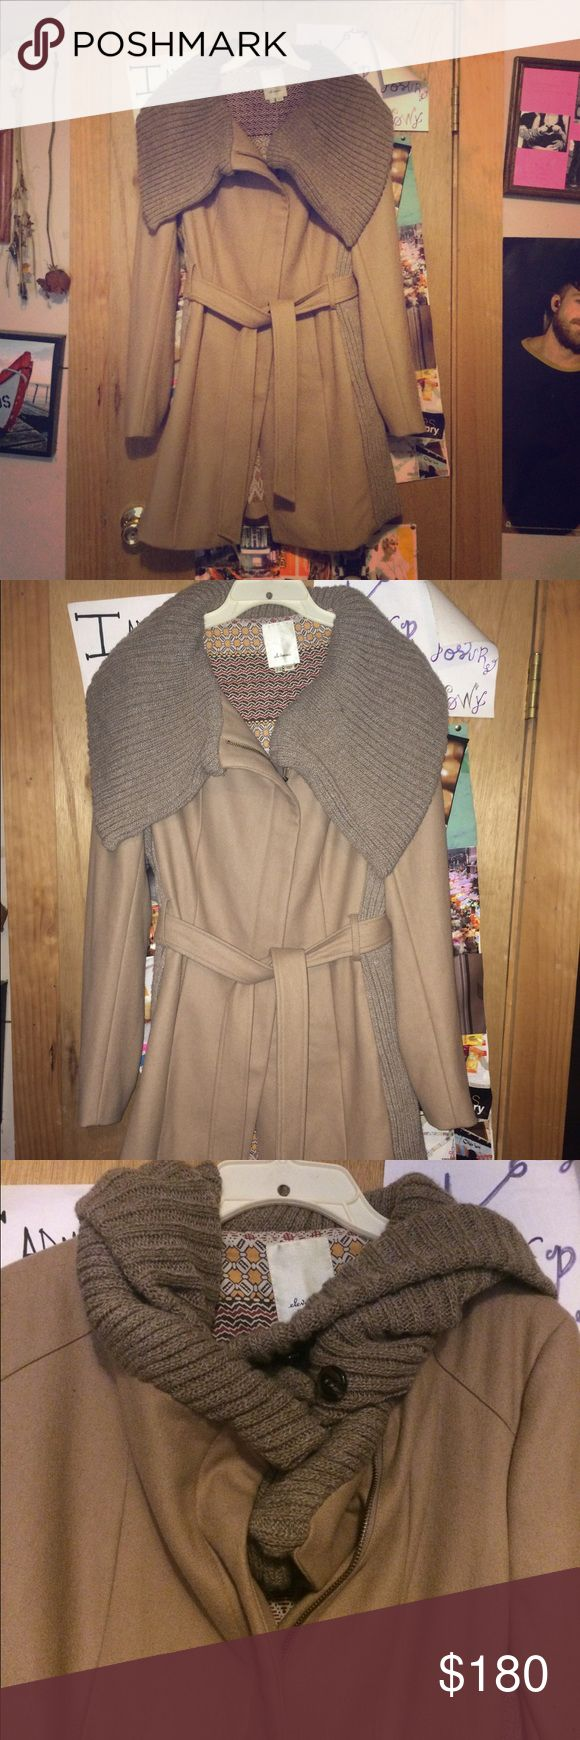 Anthropologie beige zip up winter pea coat 14 Anthropologie - brand: Elevenses. Worn only once. Excellent practically new condition. Super warm with a soft sweater material collar. Collar can be tucked in for a scarf look. With belt. Sweater material down sides. Sweater on sides is just a top layer. Fully lined. Zip up. Knee length. Front pockets. Size 14, normally I'm a 12 and fits perfect. No longer in stores Anthropologie Jackets & Coats Pea Coats